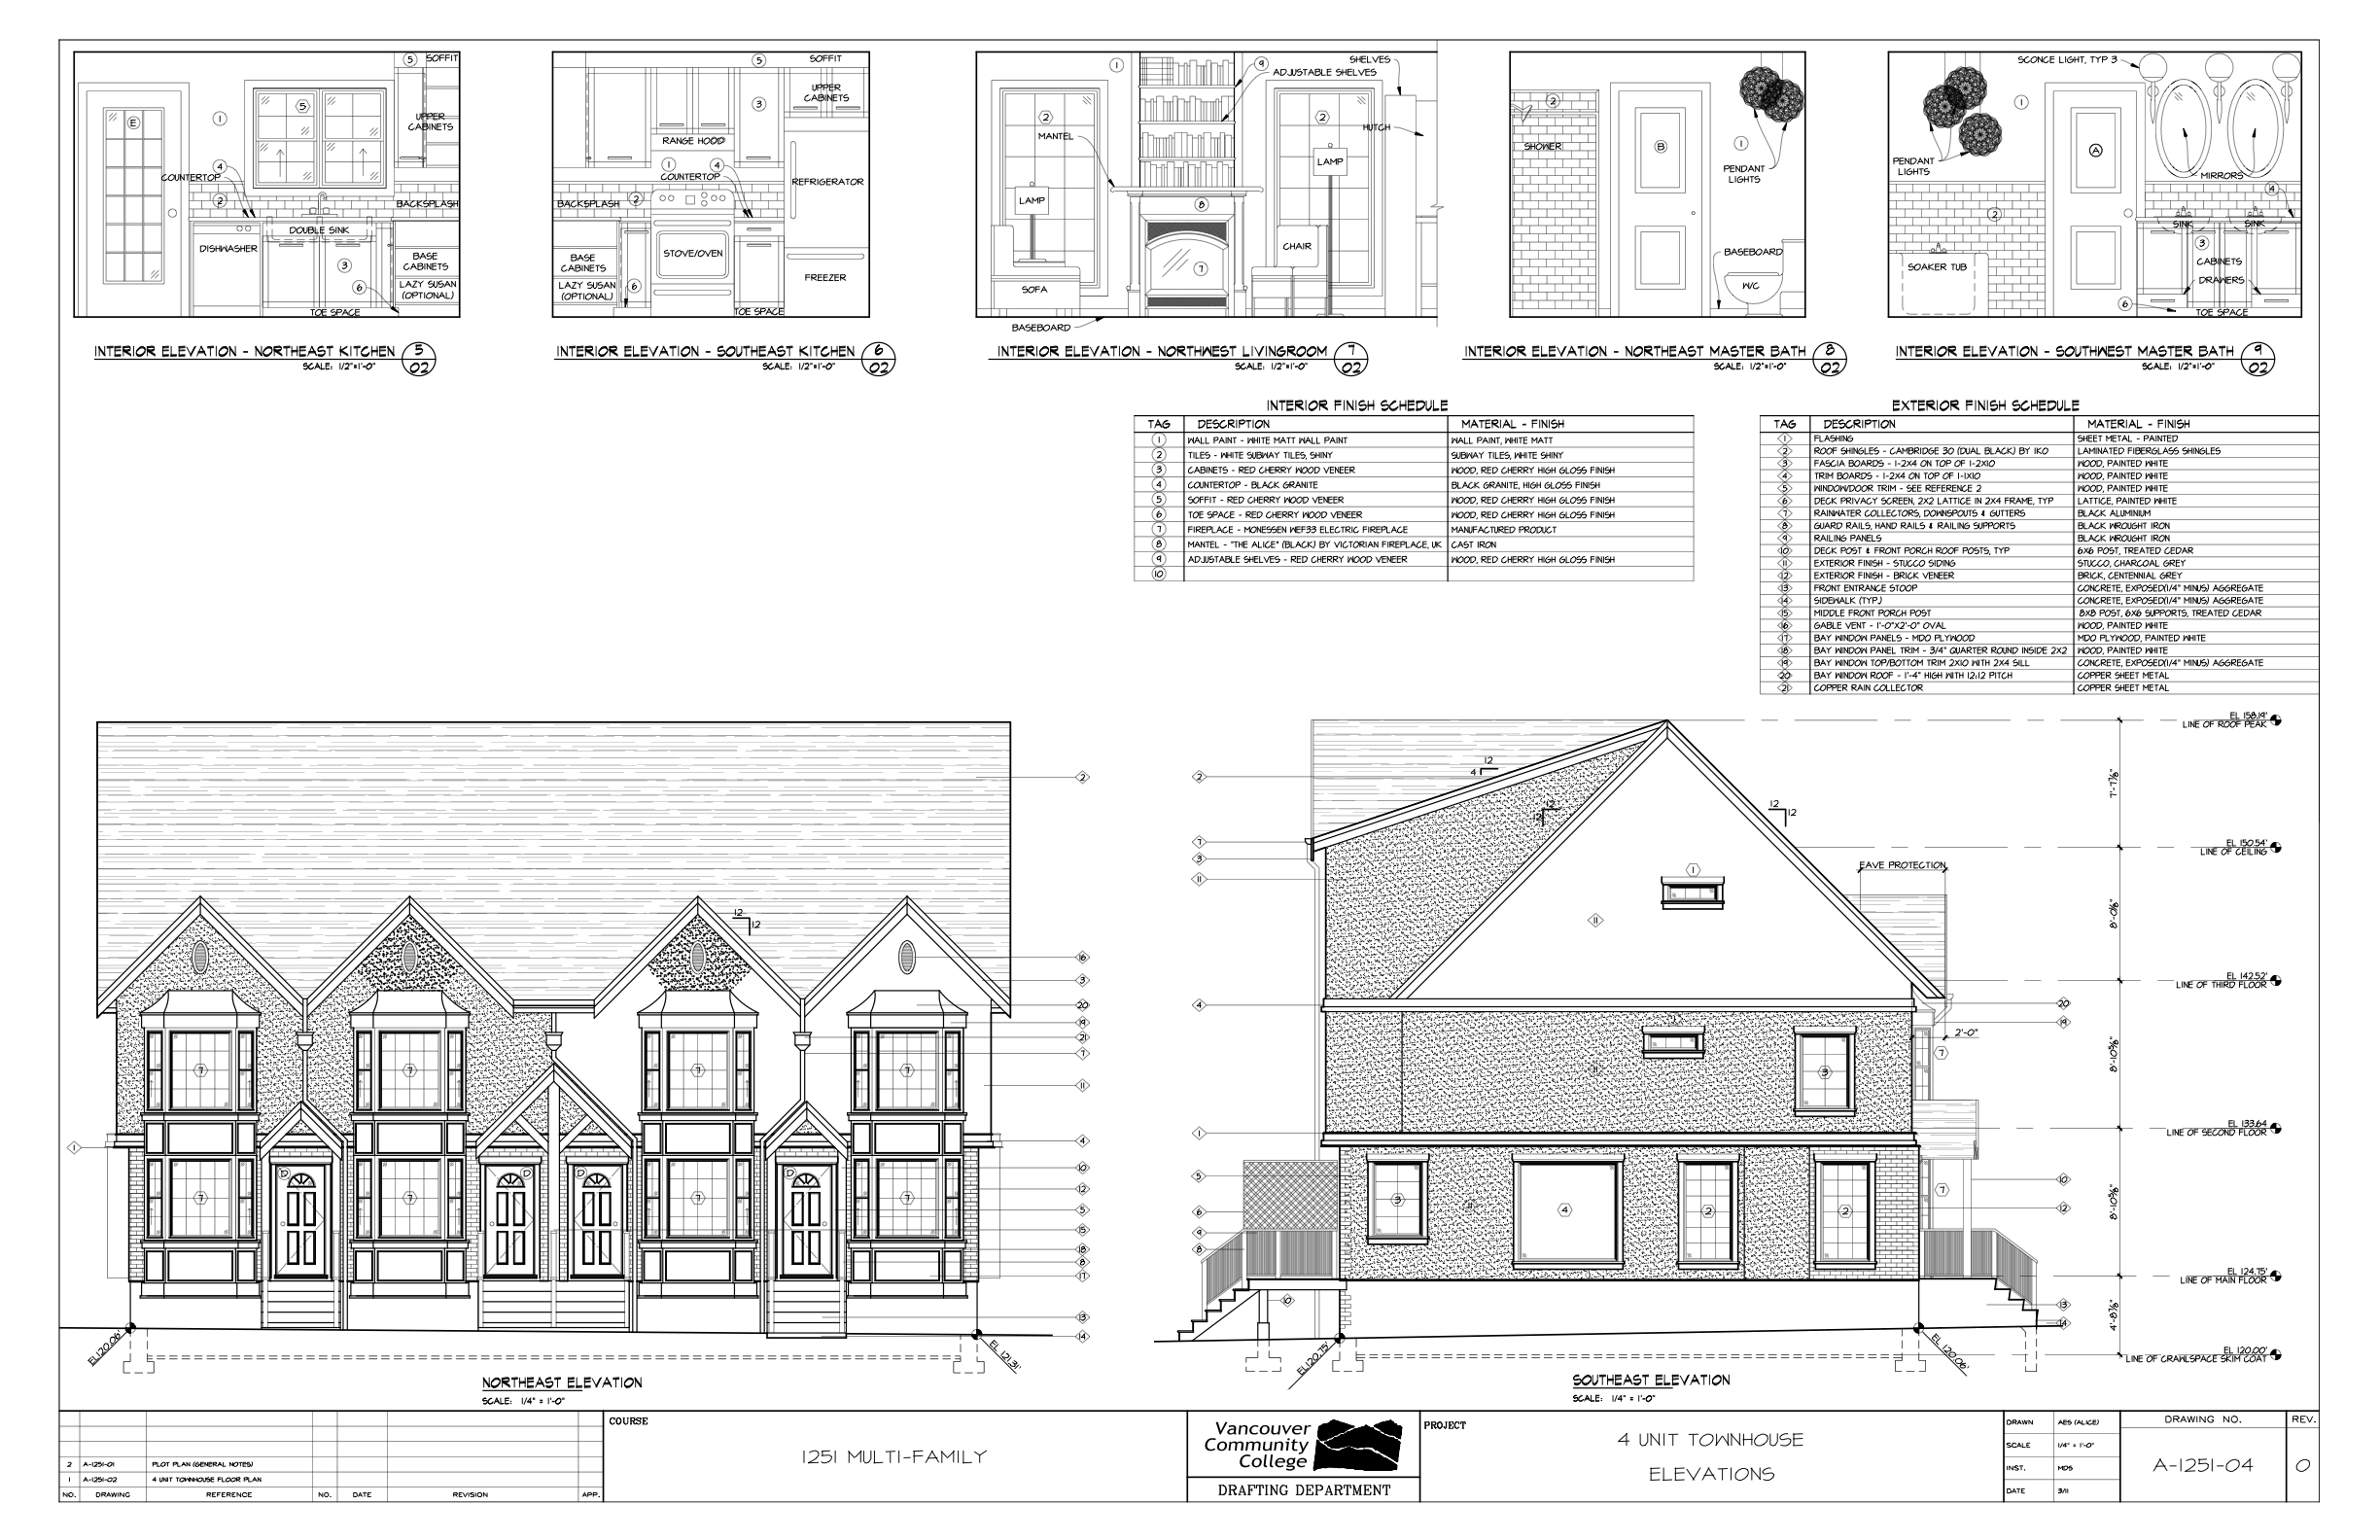 Multi family residential town house plans wonderlandworkshop 39 s weblog Residential building plans